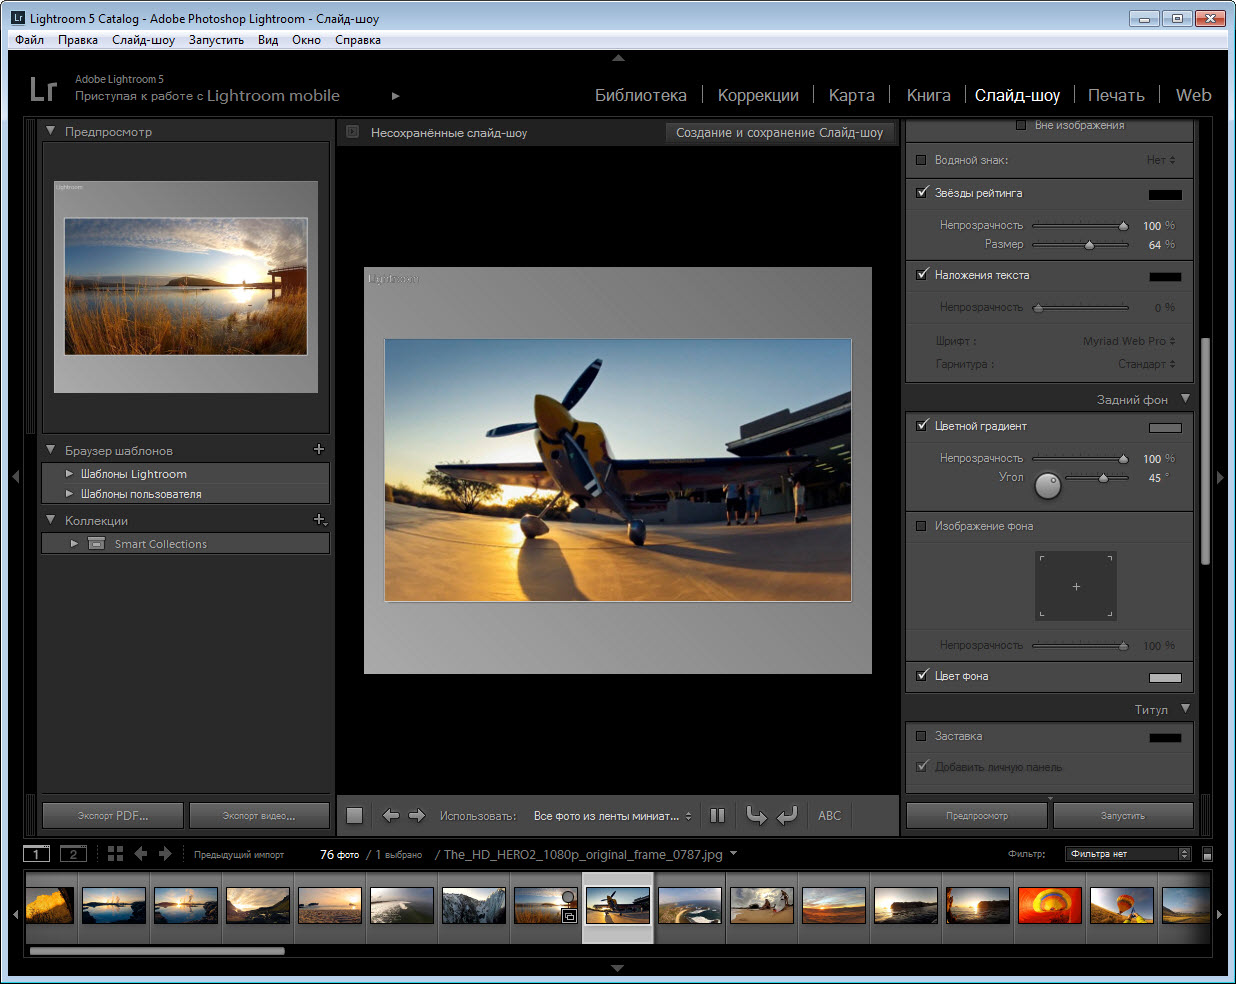 adobe photoshop lightroom rus